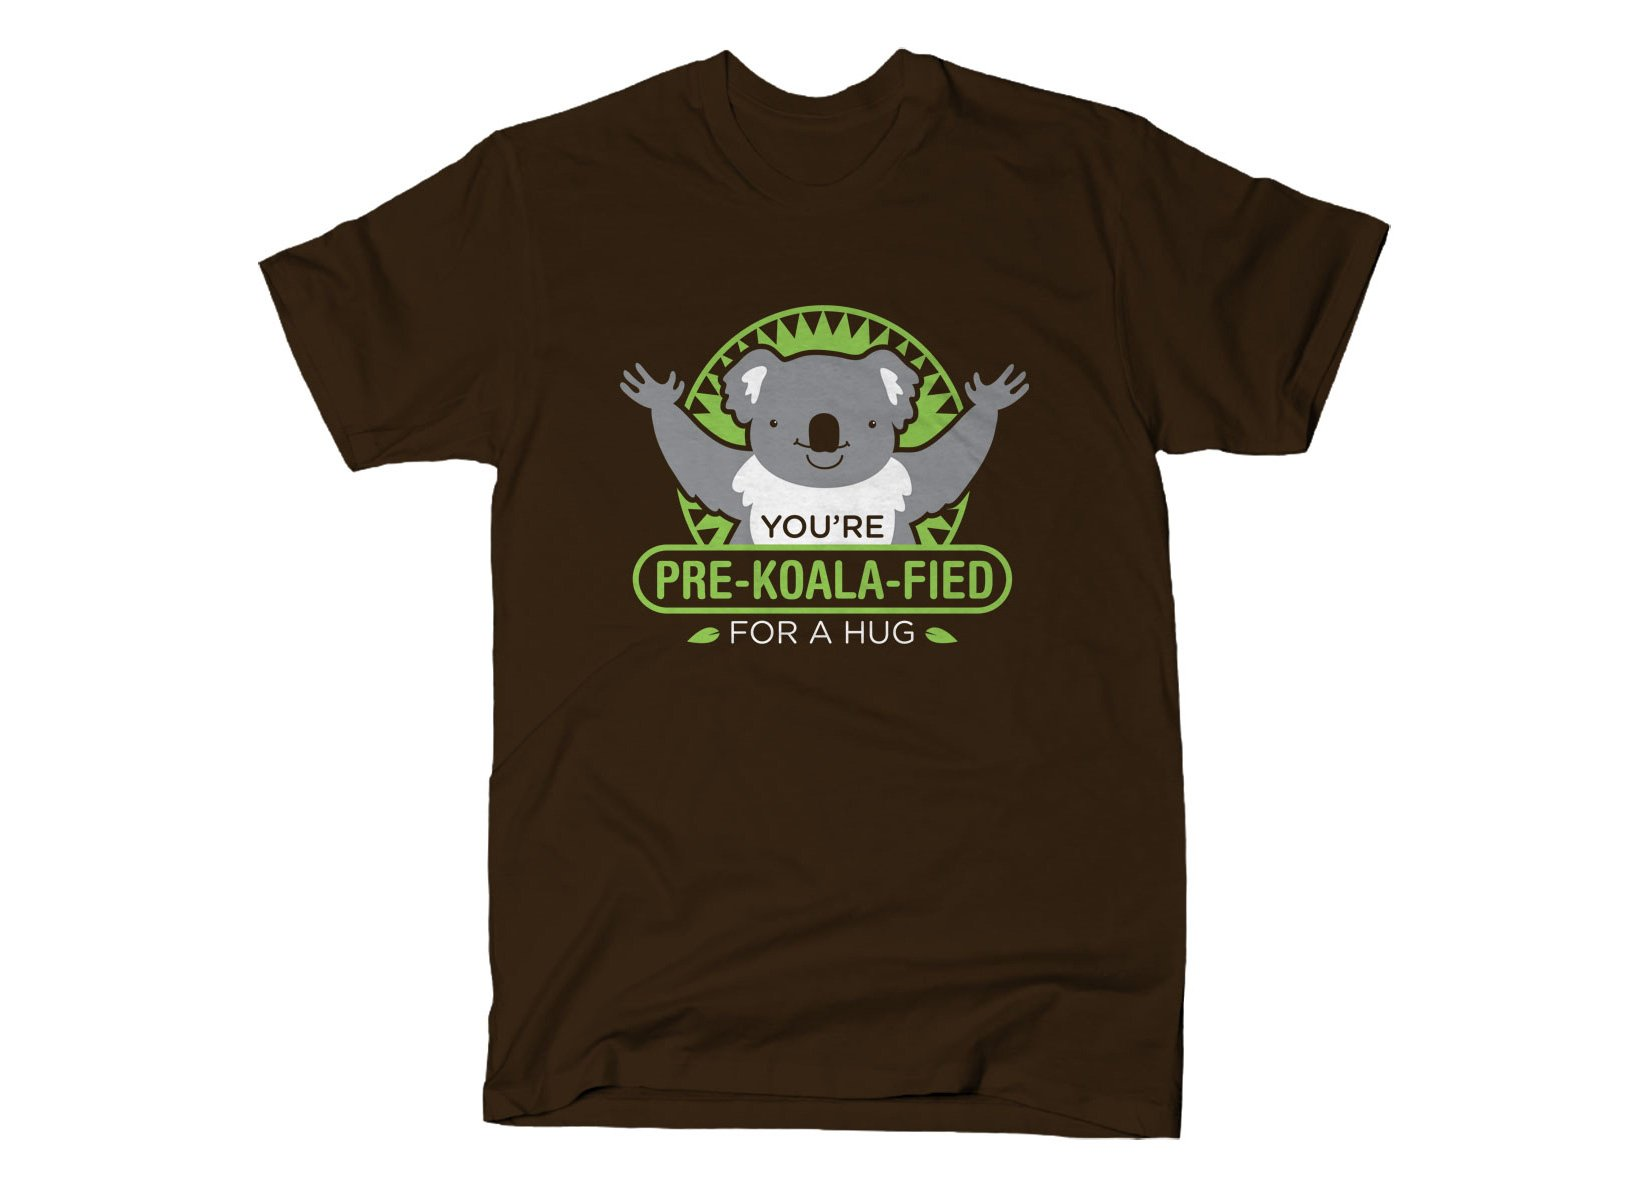 You're Pre-Koala-Fied For A Hug on Mens T-Shirt